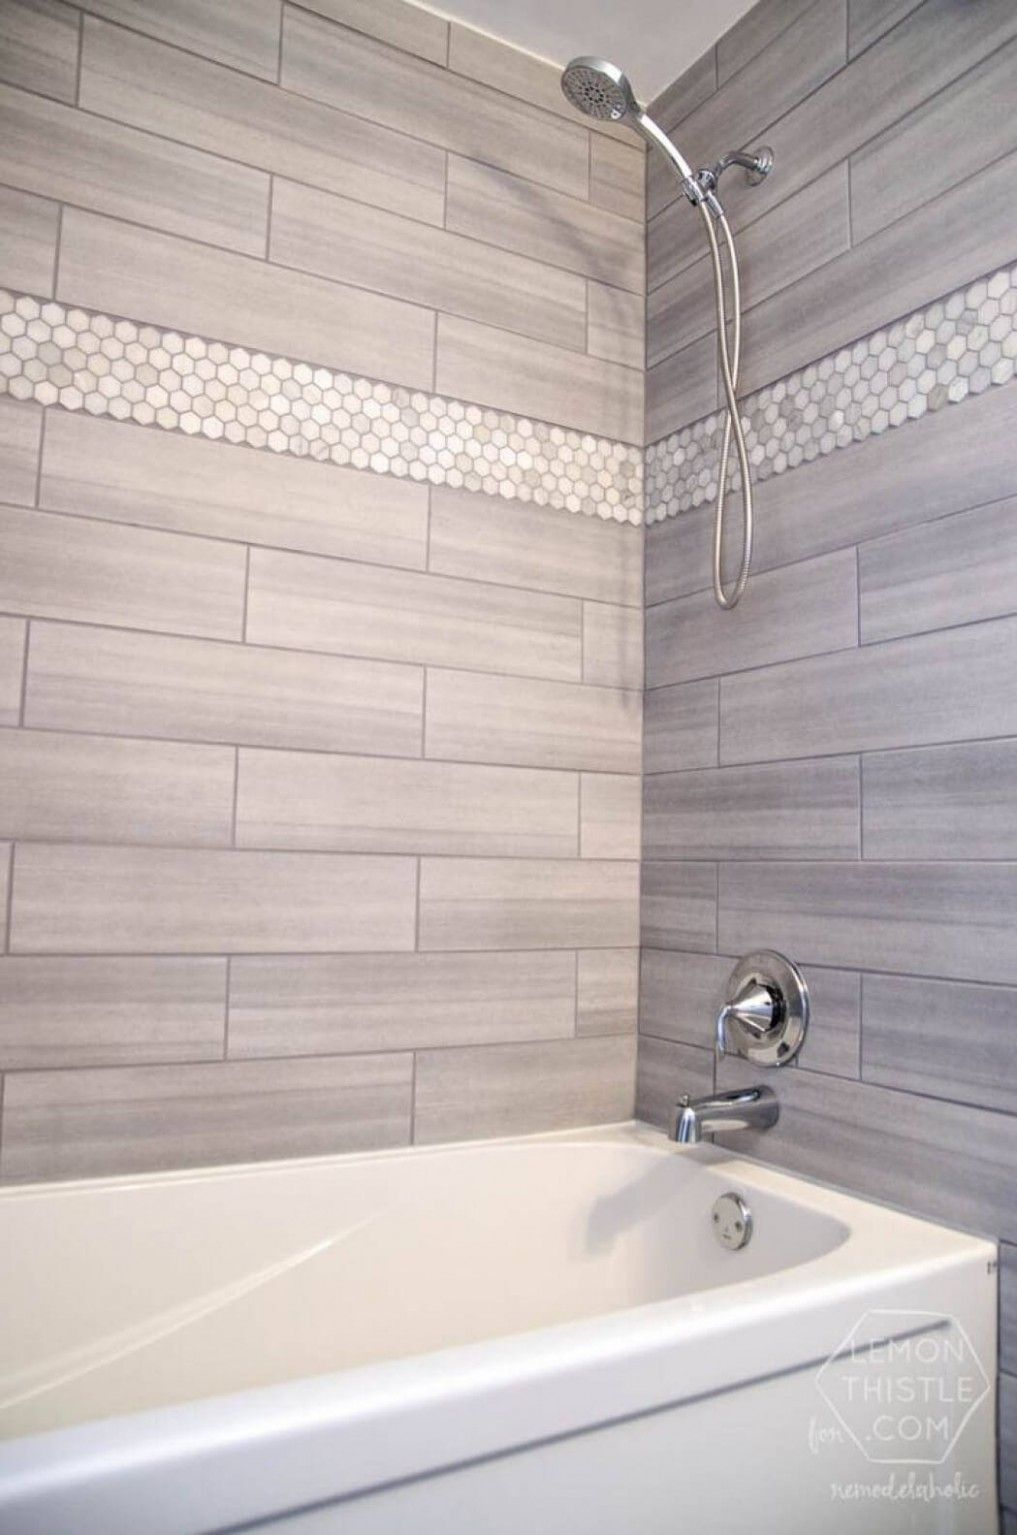 Cheap Bathroom Shower Wall Ideas In 2020 Tub Remodel Bathtub Remodel Diy Bathroom Remodel